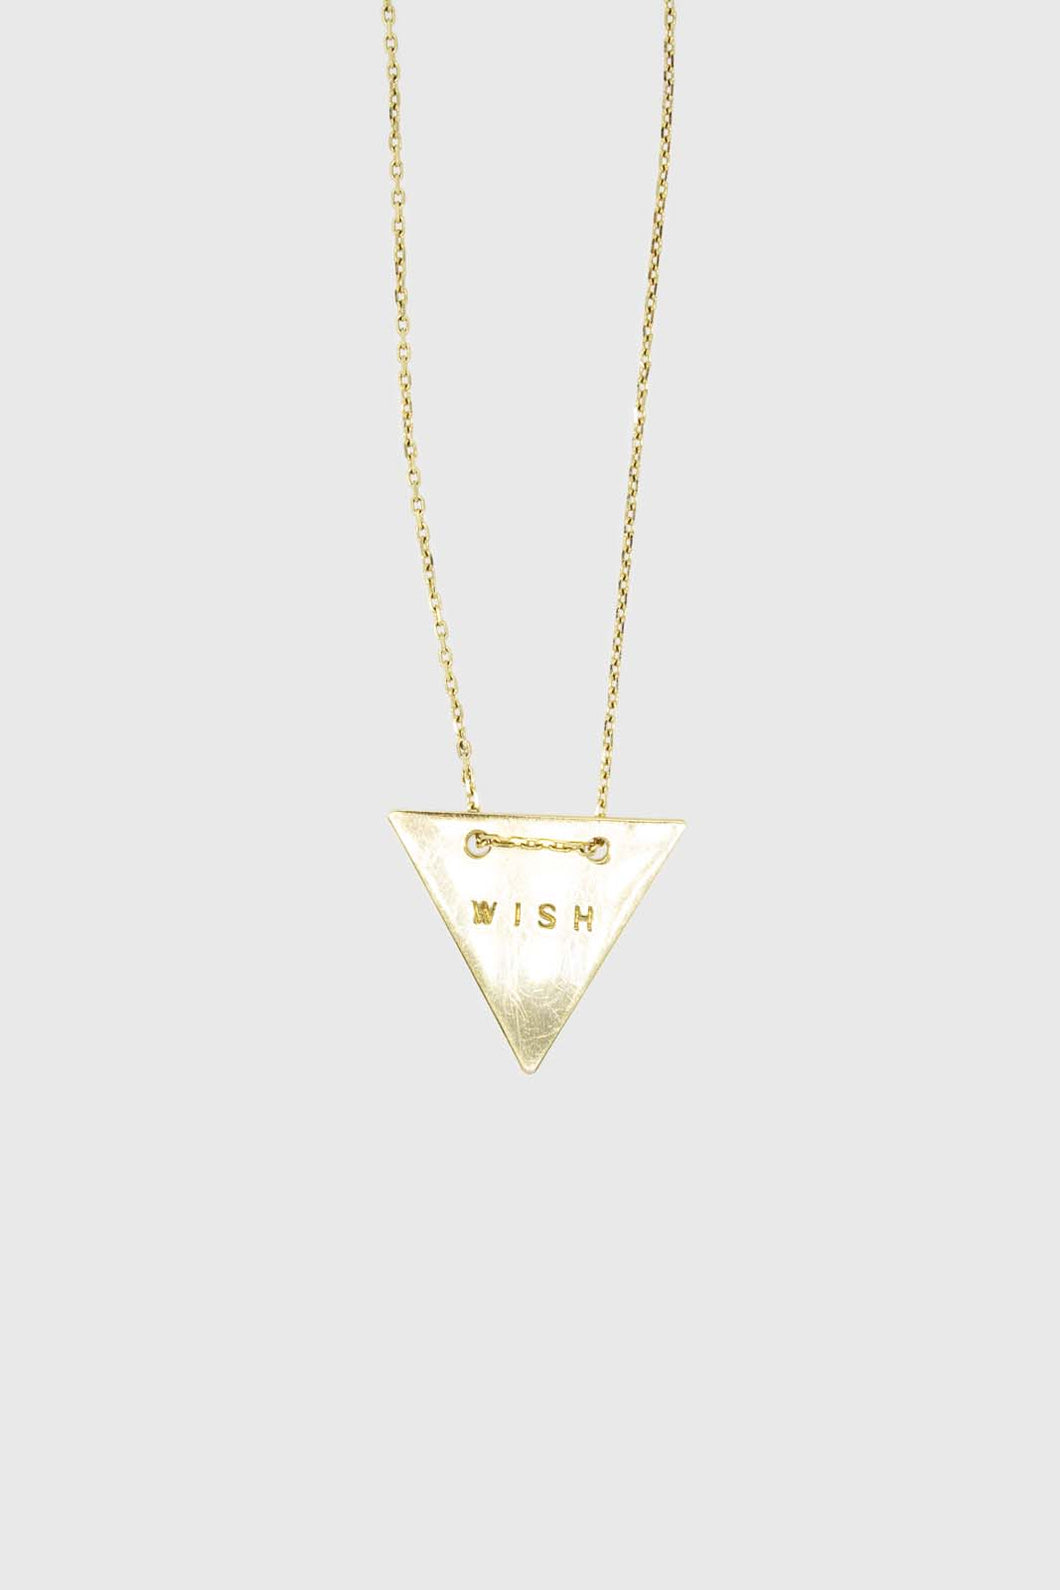 Charm necklace - Gold WISH triangle stamp pendant1